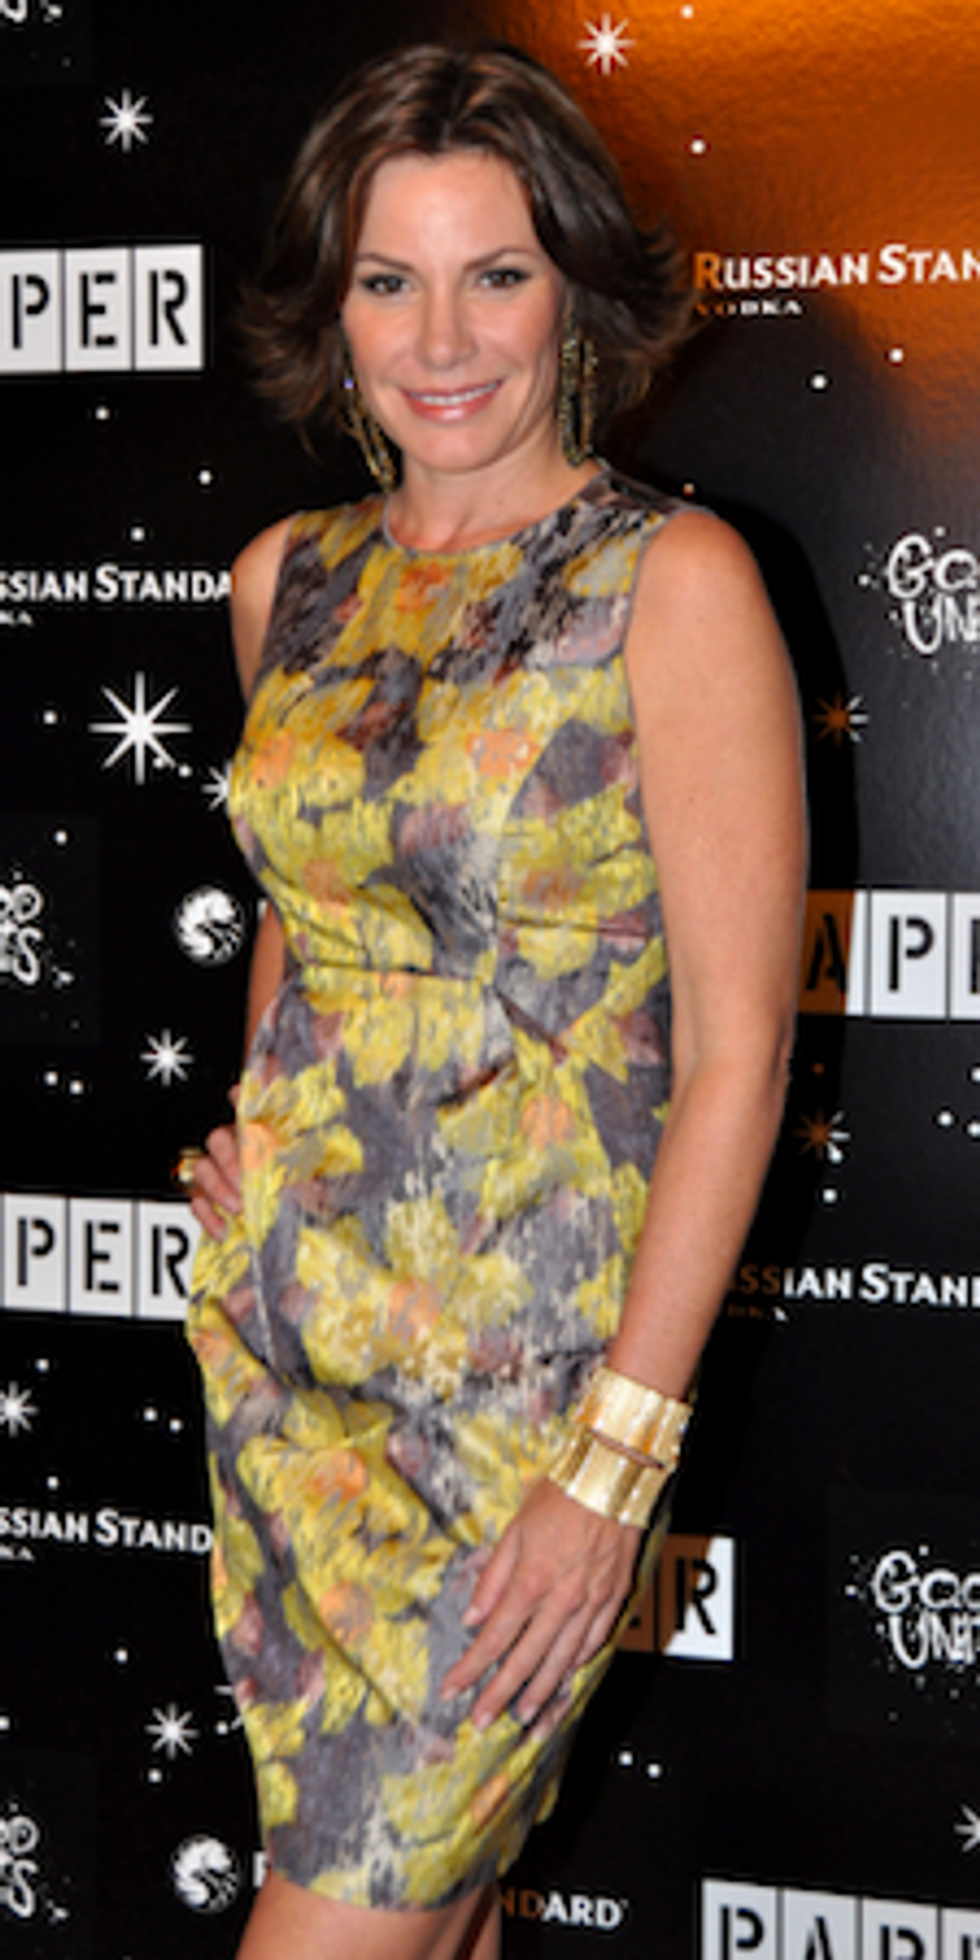 Style Stars From The Nightlife Awards: Luann de Lesseps